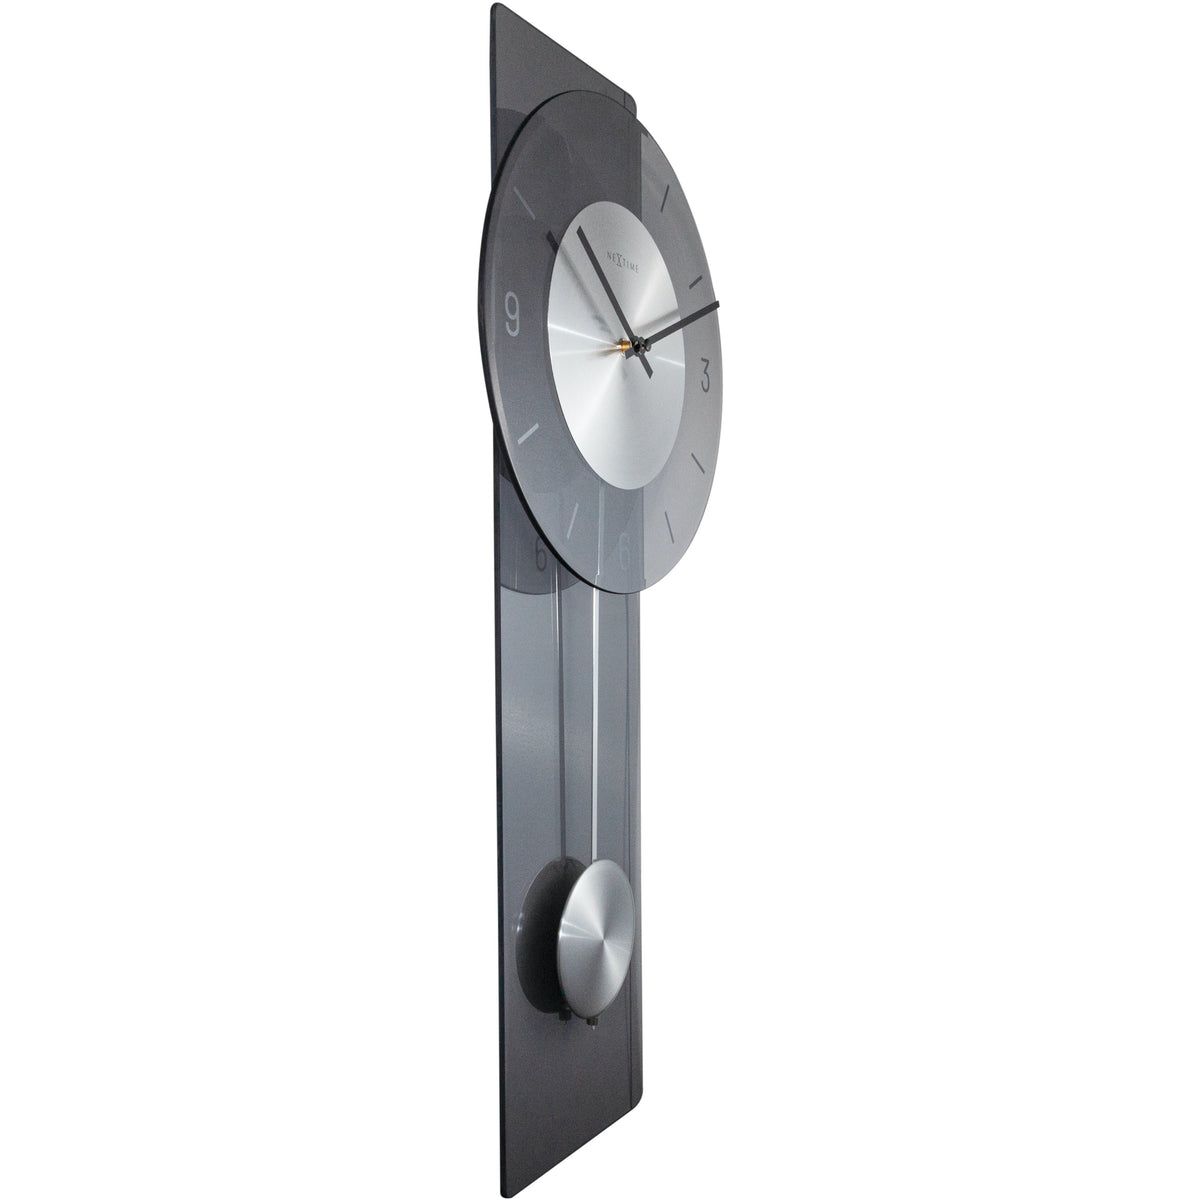 NeXtime- Wall clock - 70 x 30 cm - Glass / Metal - Grey - 'Eleanor'